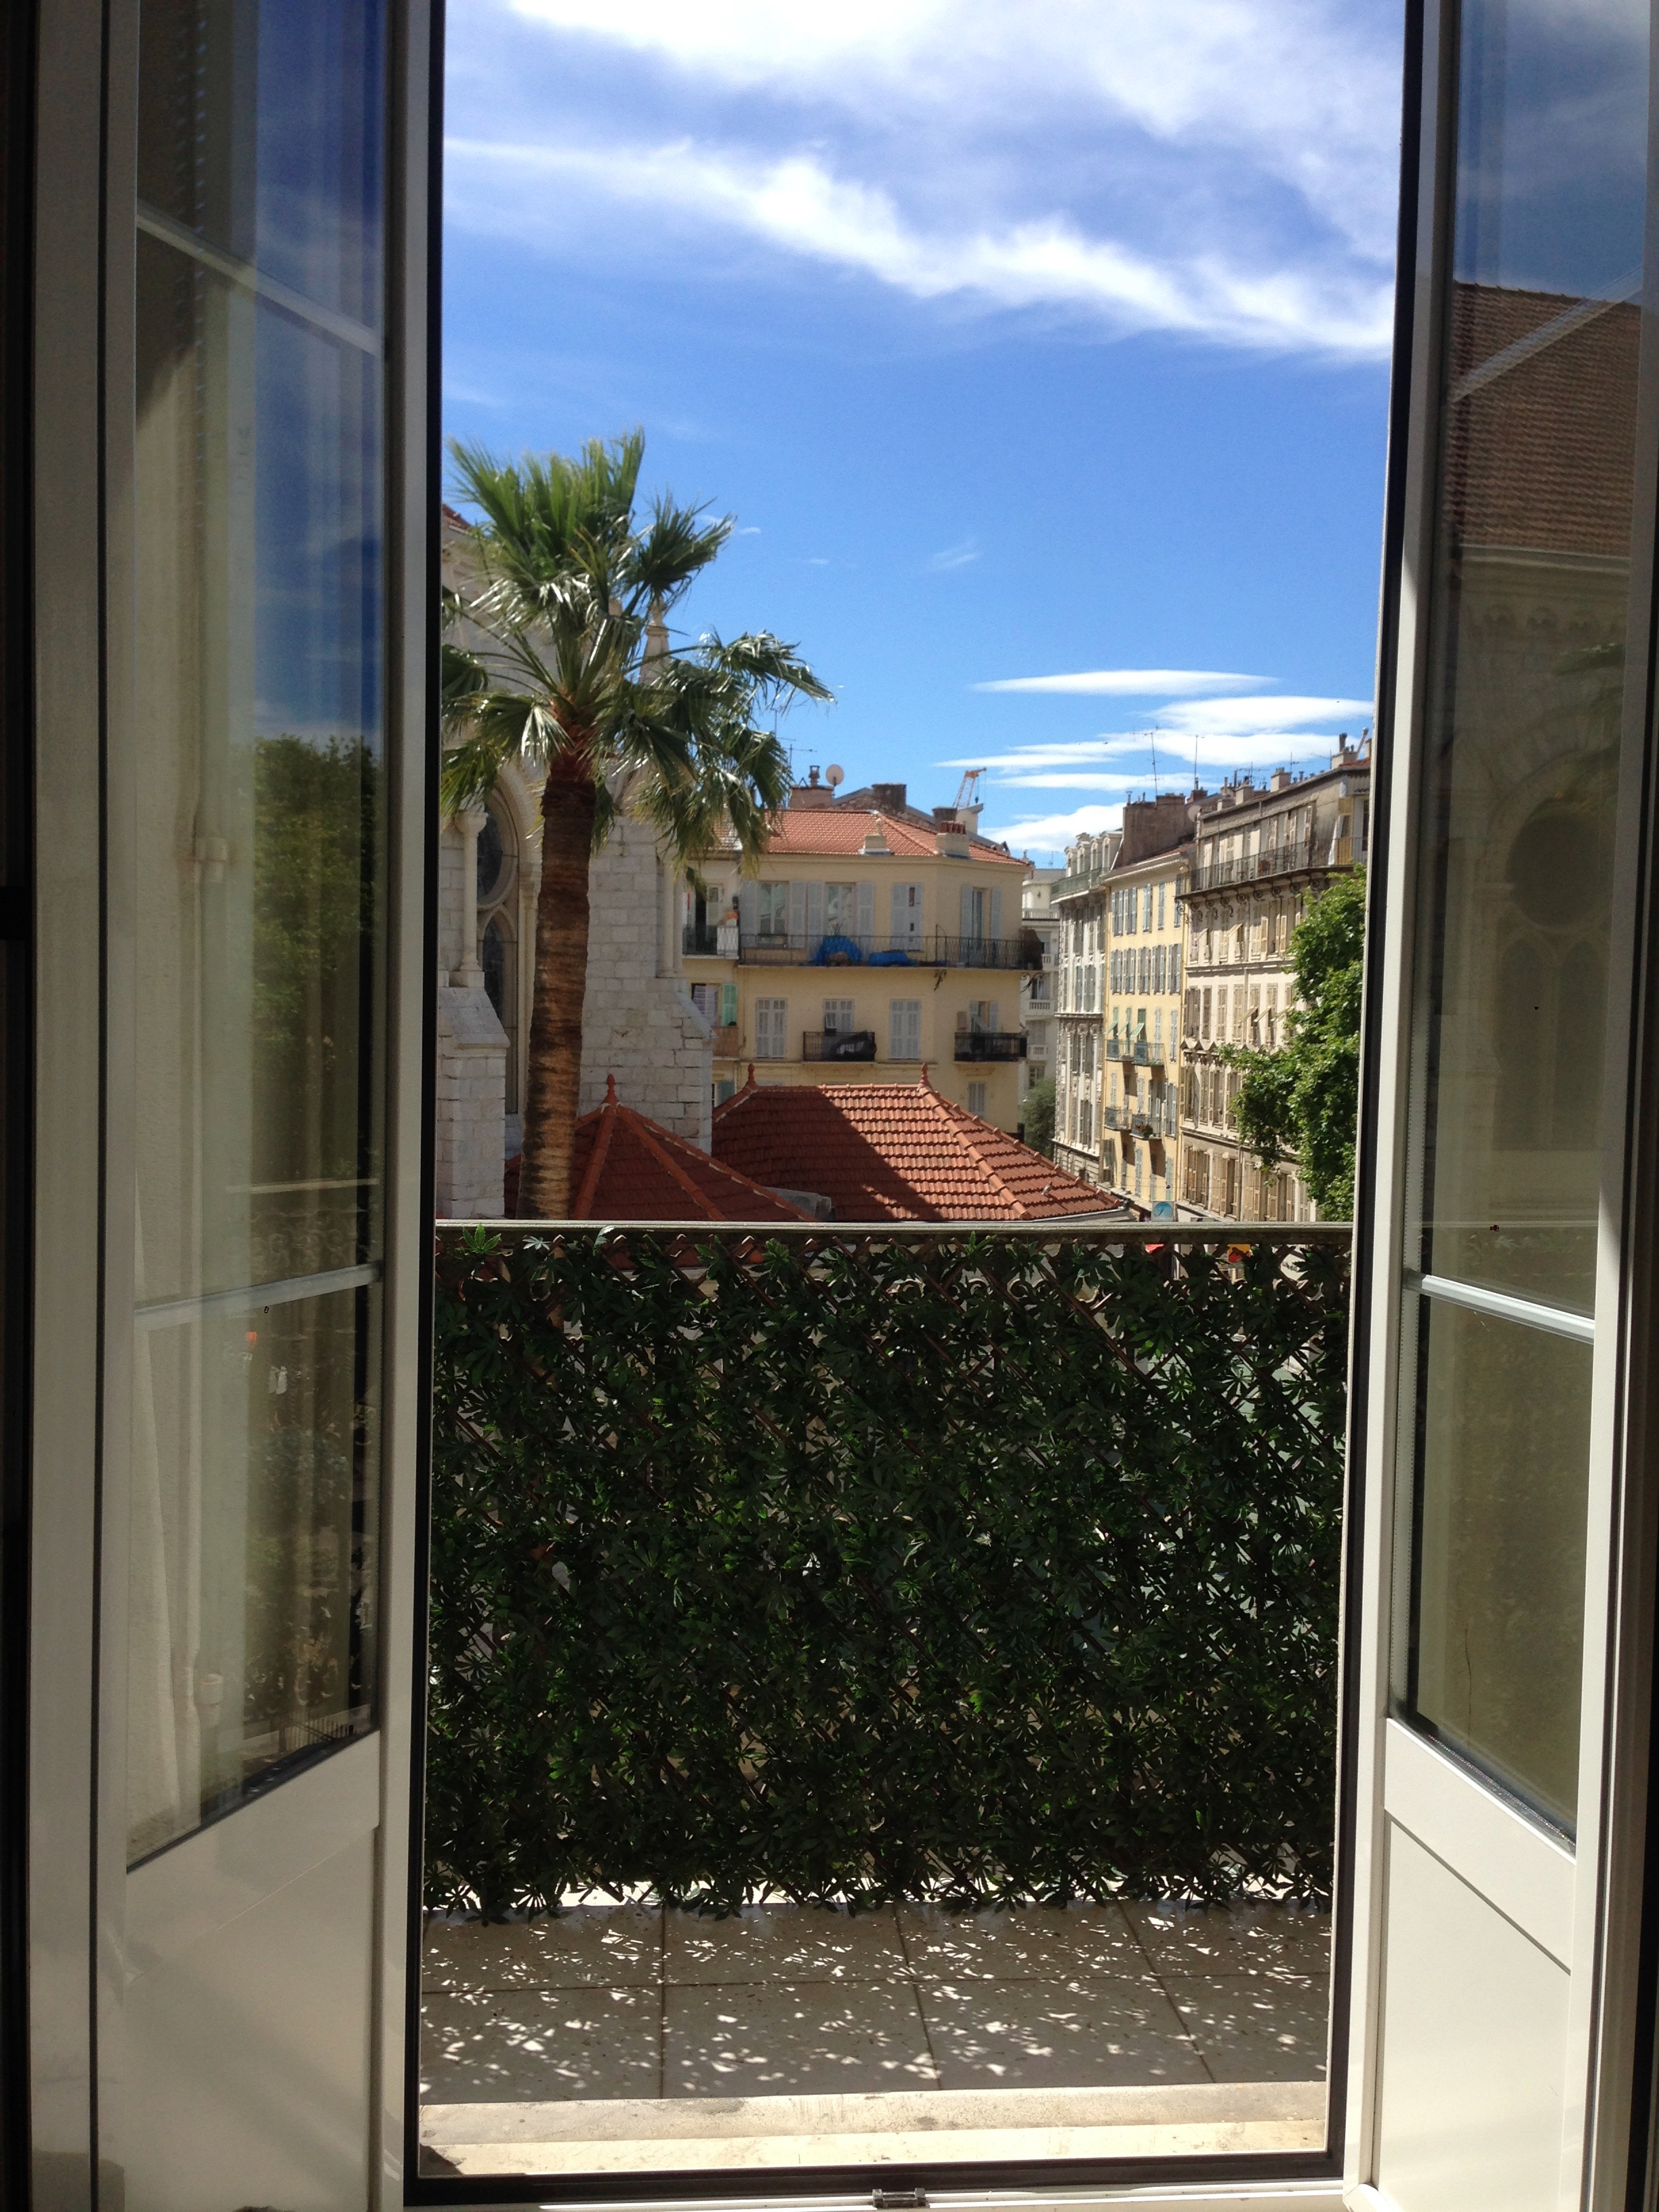 An open window in our rented apartment in Nice, overlooking the Basilica Notre Dame.